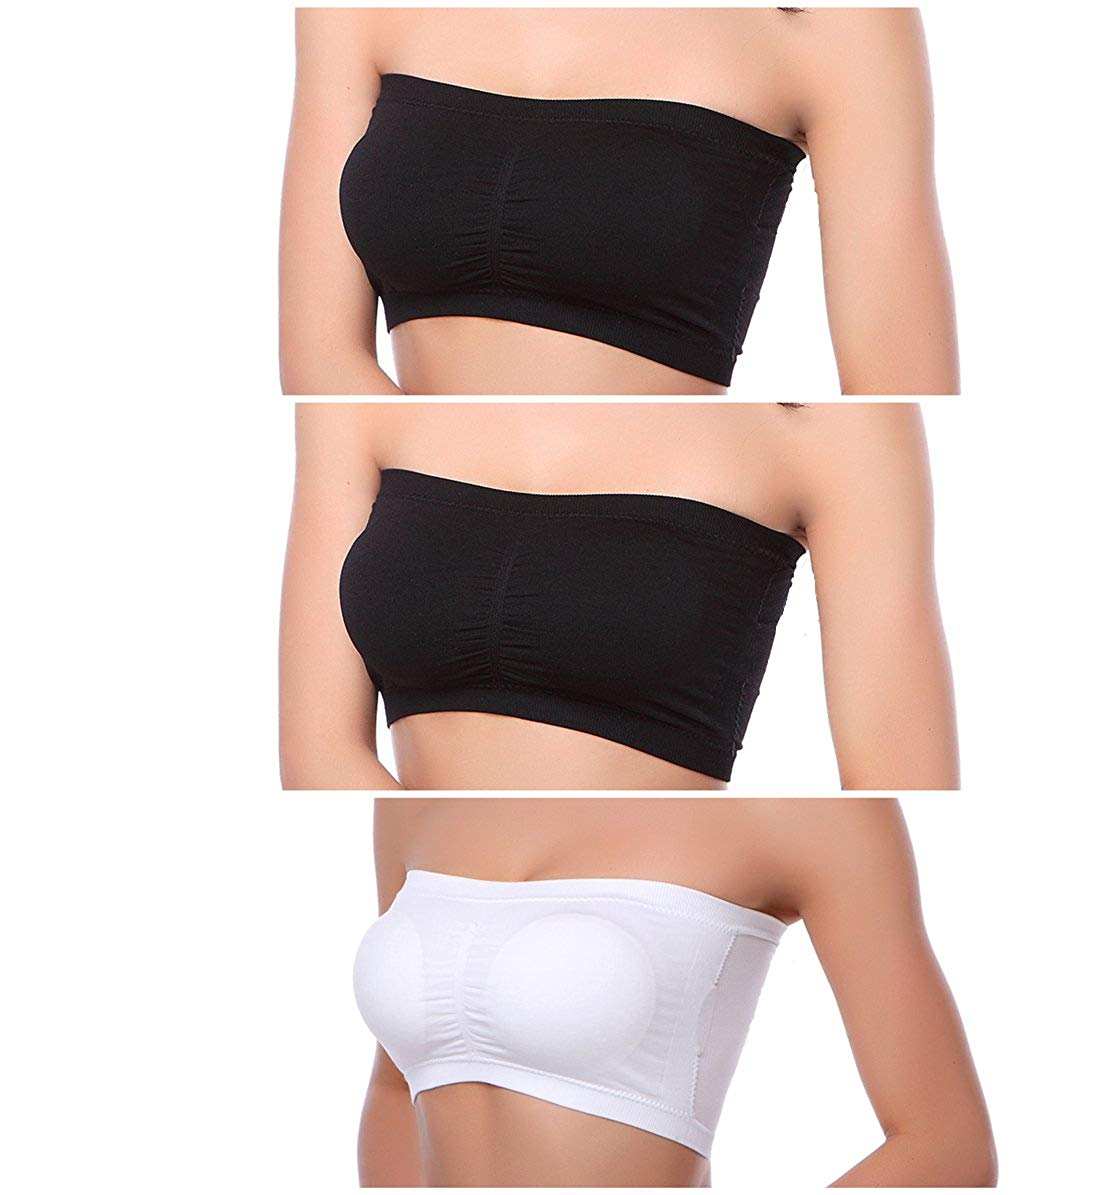 05221c5c2c Xuvozta Women Seamless Bandeau Bra Removable Padded Tube Top Bra Stretch  Bralette 3 Pack